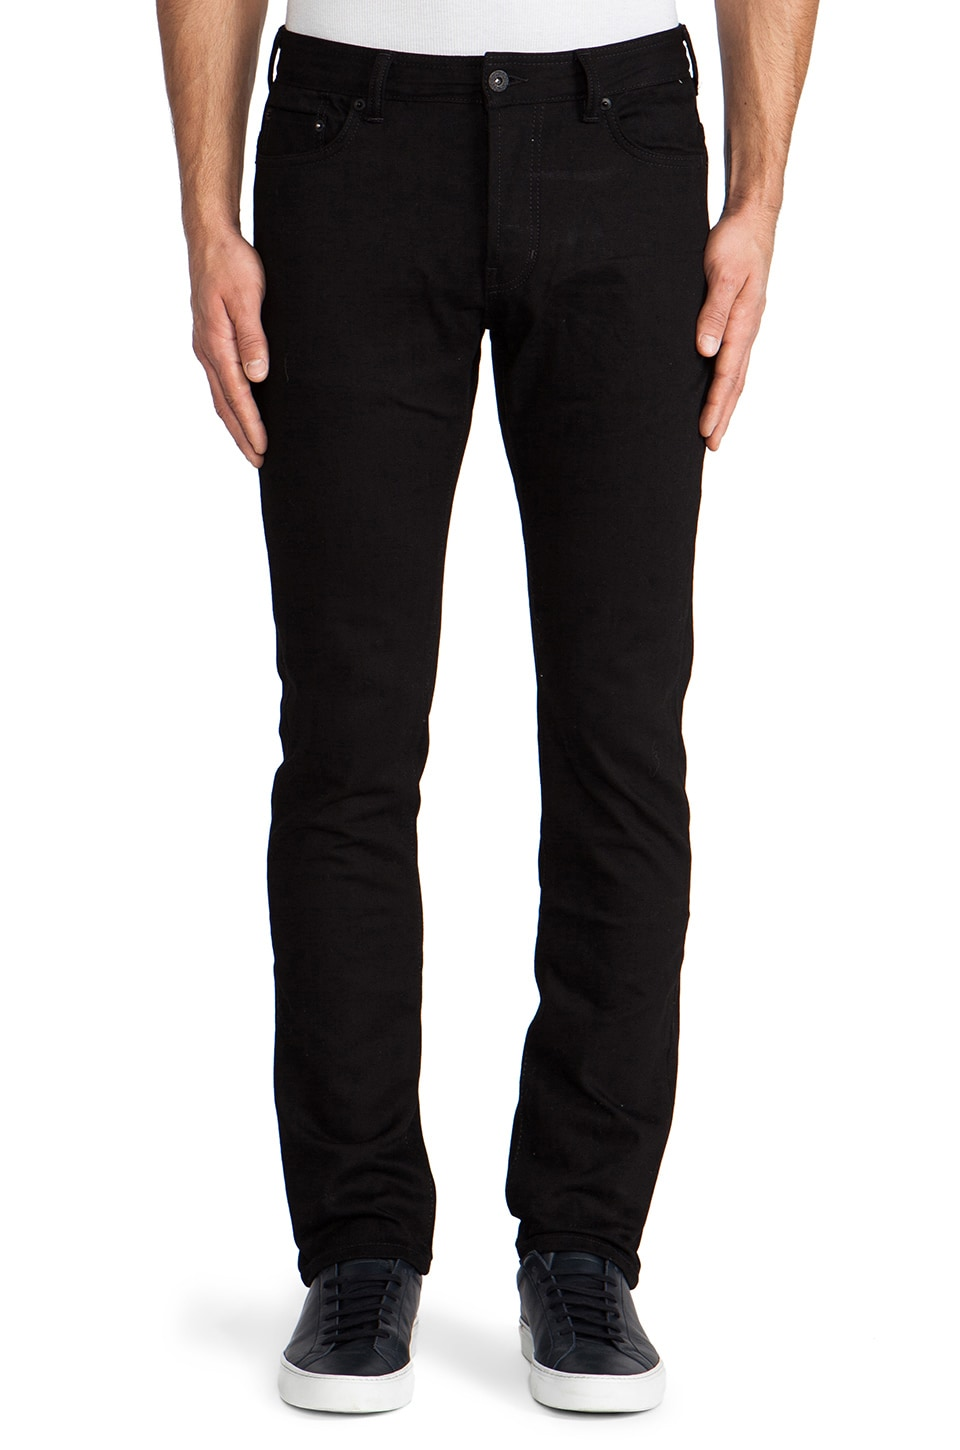 Natural Selection Denim Taper in Black